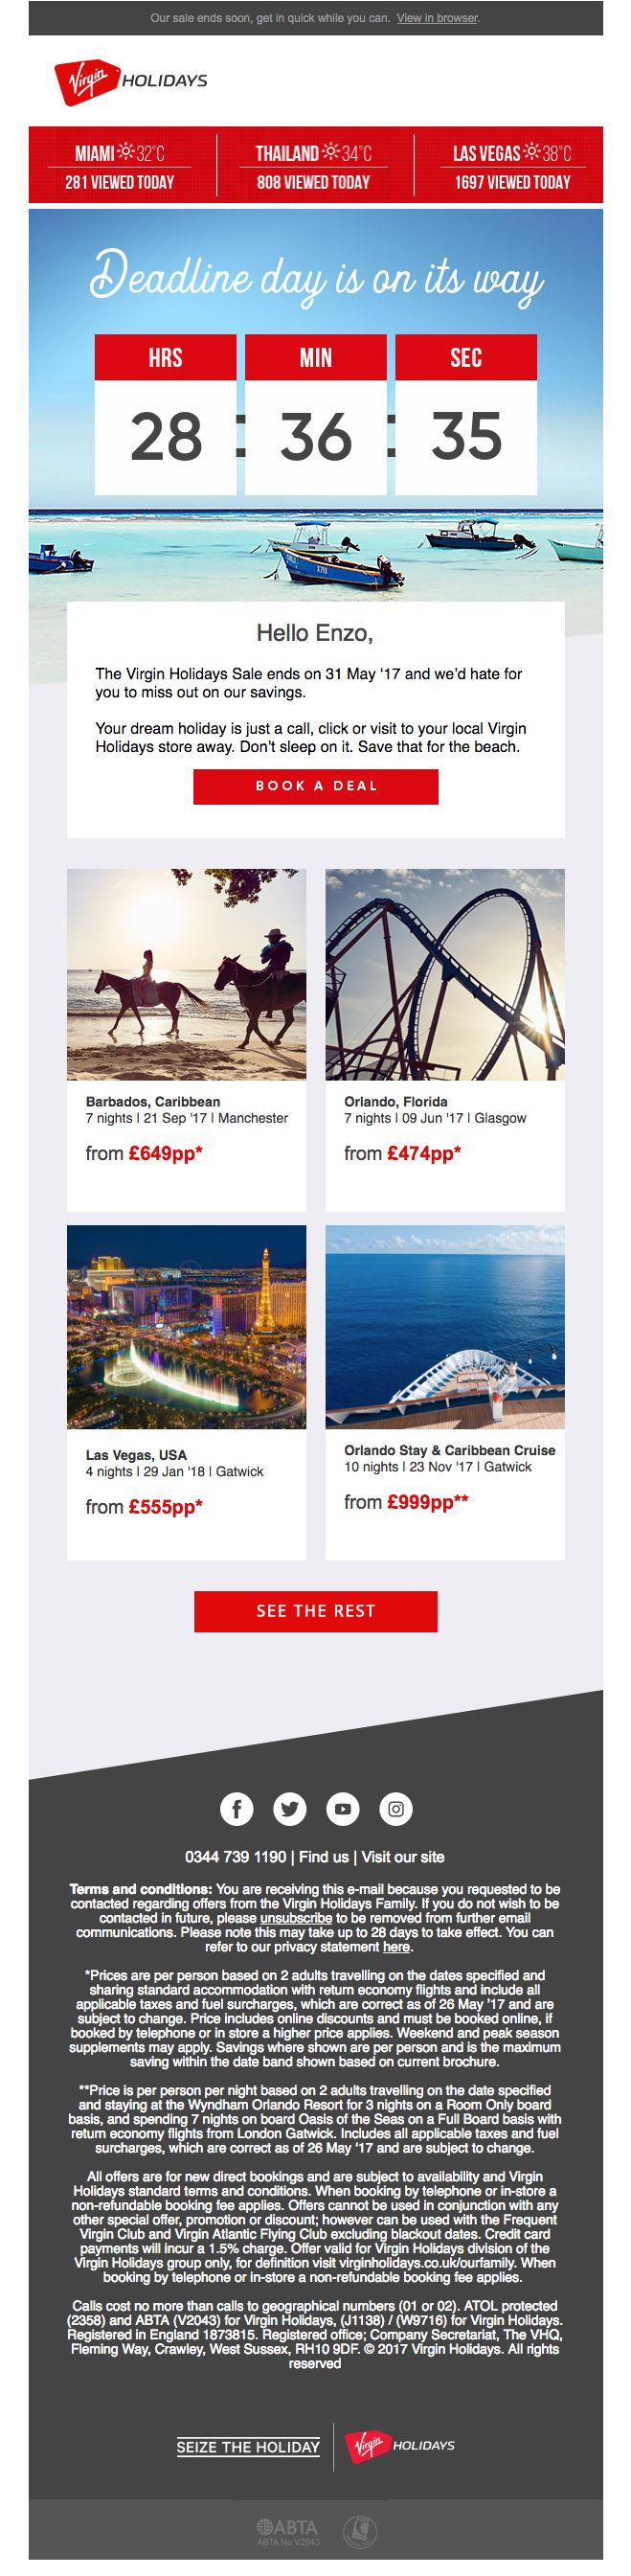 Live countdown timer in this email from Virgin Holidays